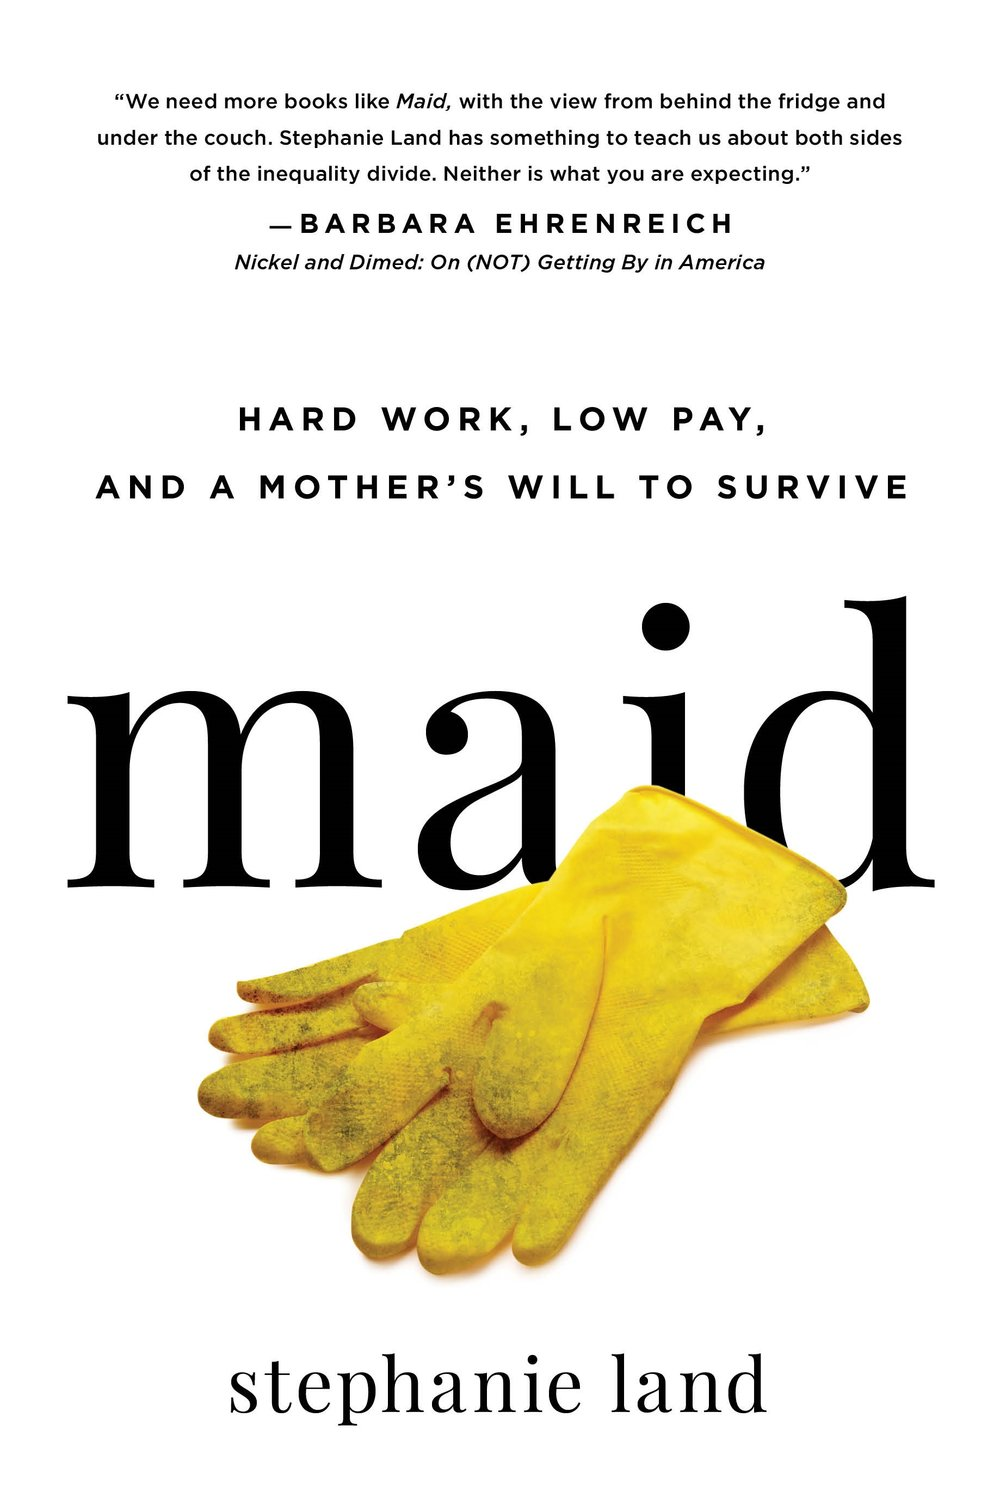 """Maid explores the underbelly of upper-middle class America and the reality of what it's like to be in service to them. """"I'd become a nameless ghost,"""" Stephanie writes about her relationship with her clients. Her compassionate, unflinching writing as a journalist gives voice to the """"servant"""" worker, and those pursuing the American Dream from below the poverty line. Maid is Stephanie's story, but it's not her alone. It is an inspiring testament to the strength, determination, and ultimate triumph of the human spirit."""